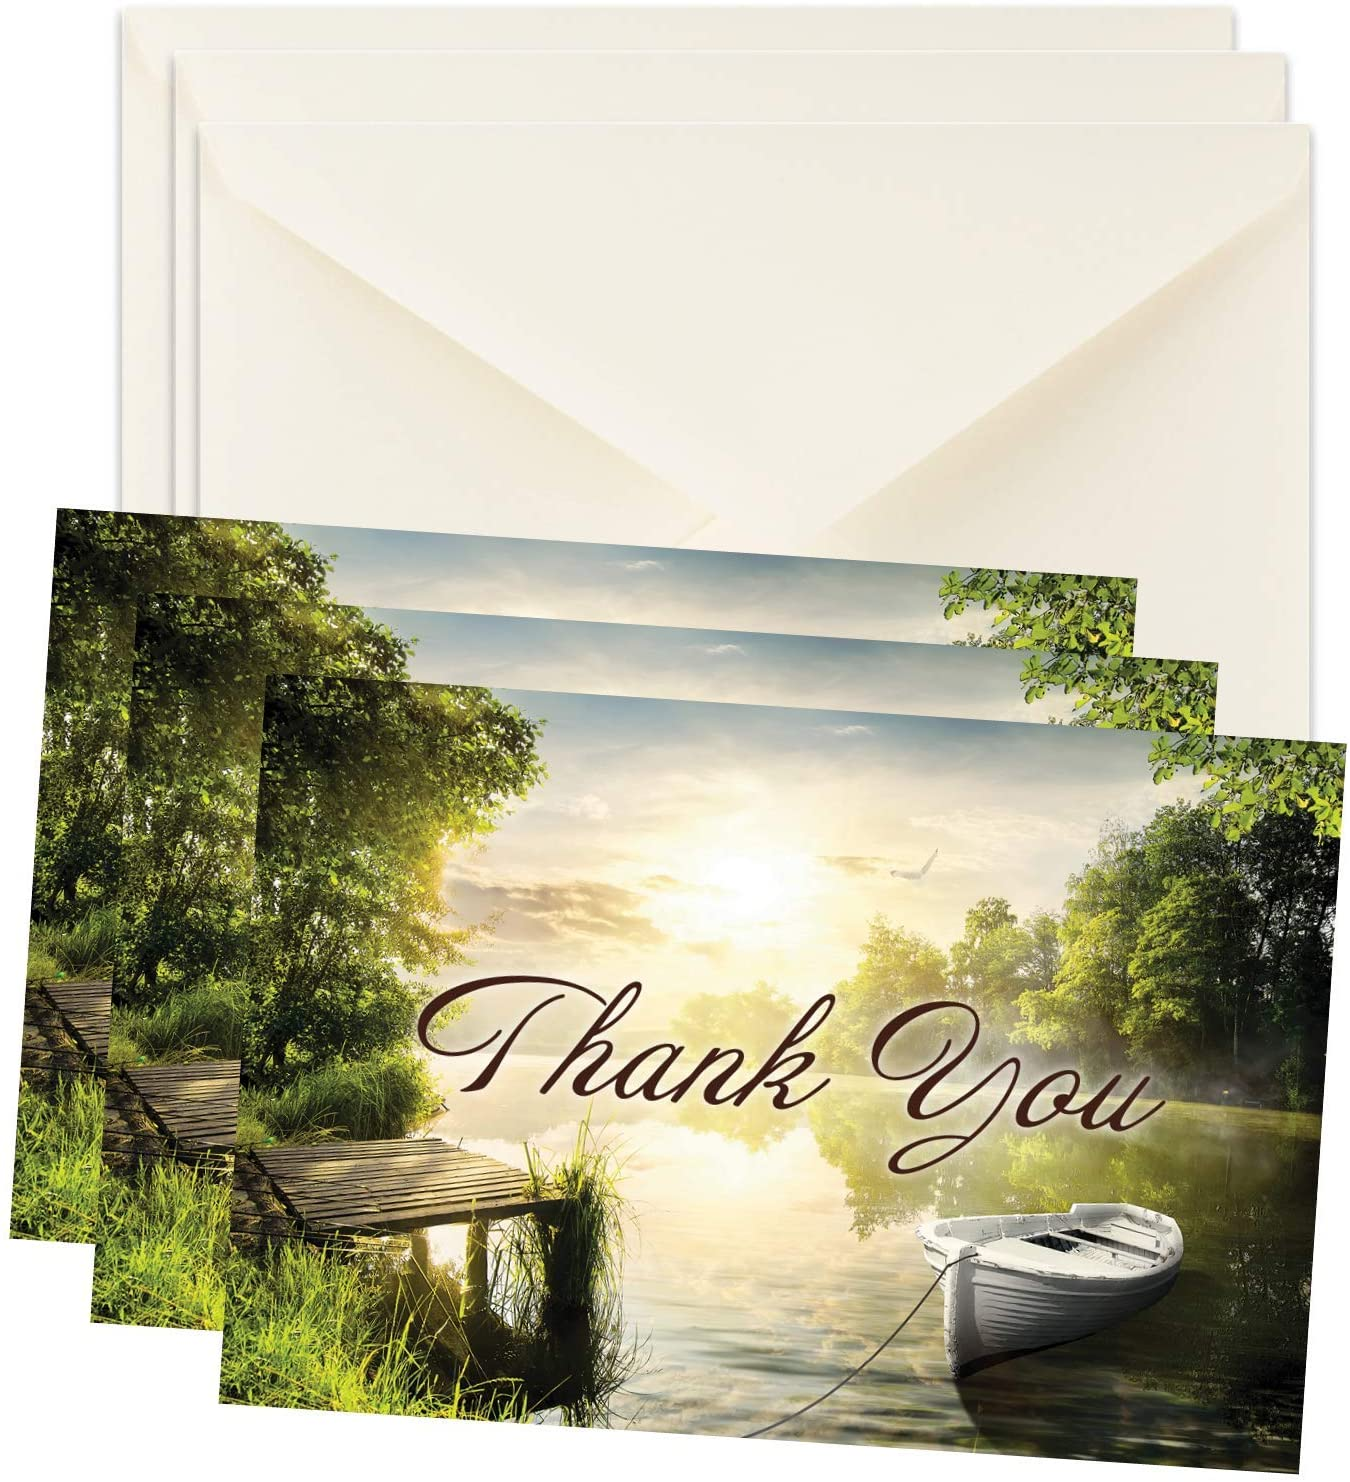 Masculine Funeral Sympathy Bereavement Thank You Cards With Envelopes - Message Inside (Boat, 50)